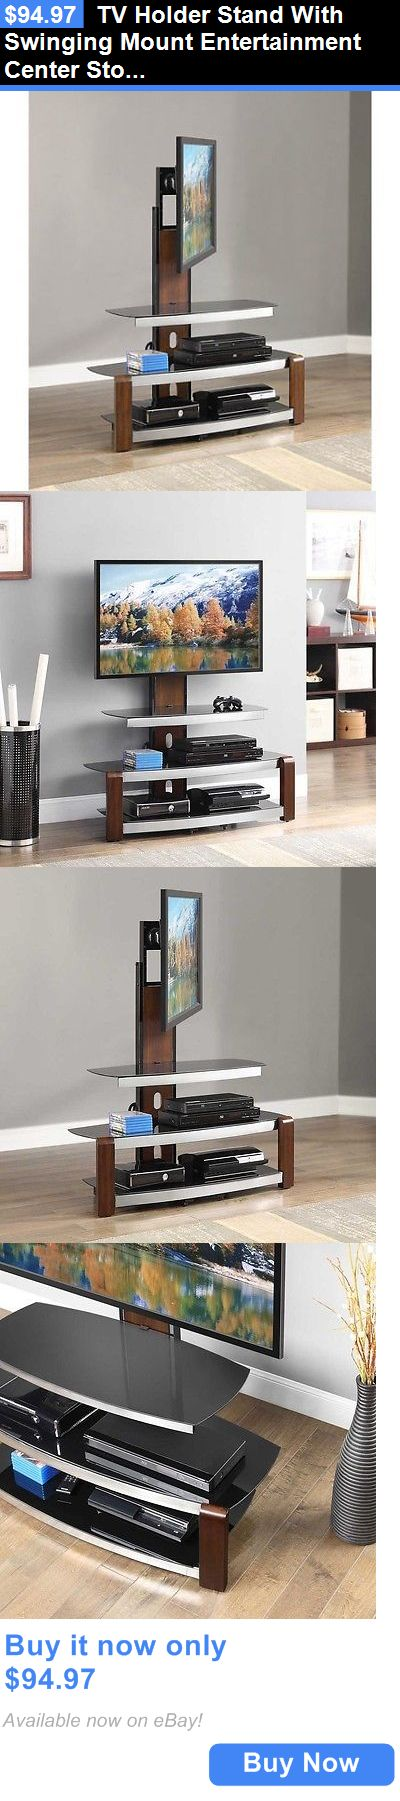 Entertainment Units TV Stands: Tv Holder Stand With Swinging Mount Entertainment Center Storage Glass Top Brown BUY IT NOW ONLY: $94.97